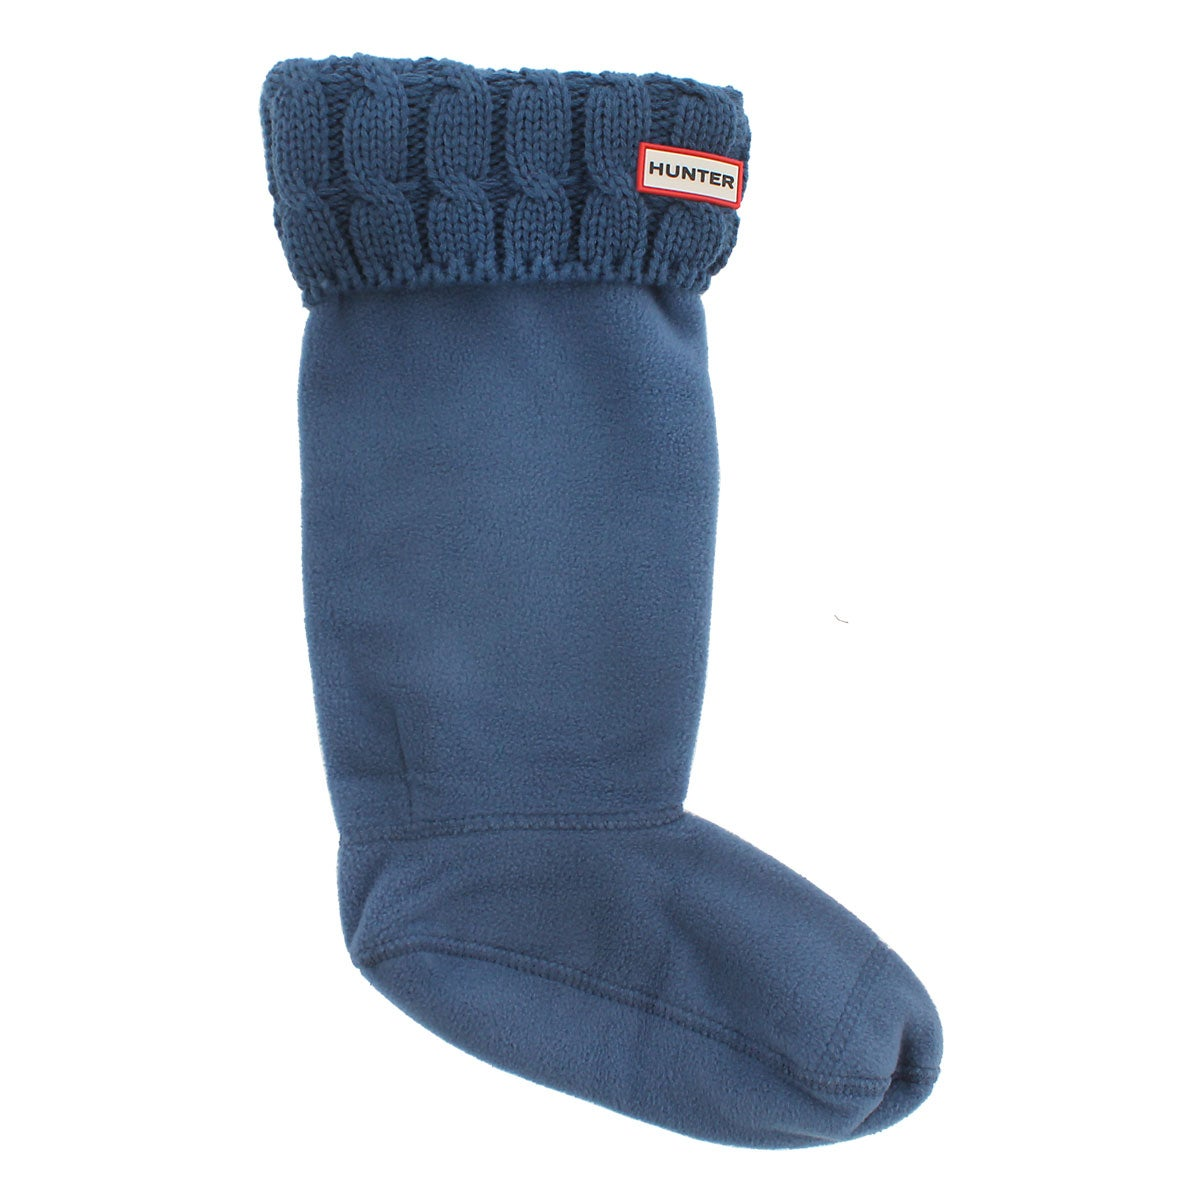 Lds 6 Stitch Cable tarp blue boot sock